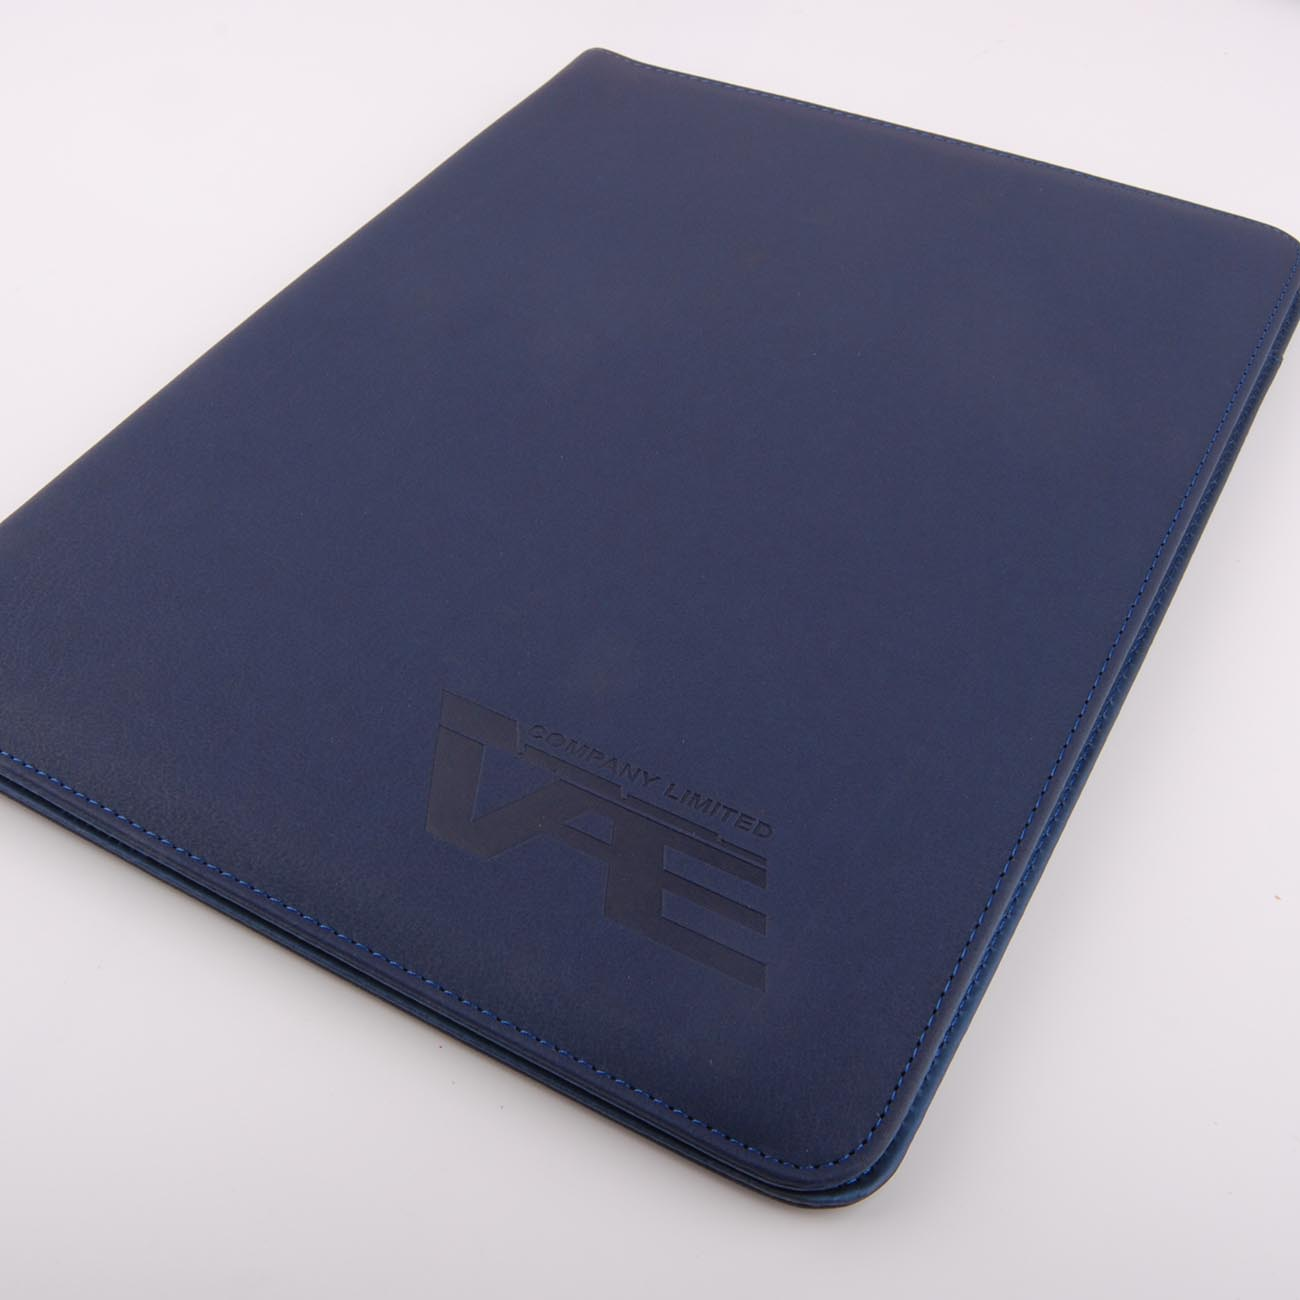 http://www.best-notebook.com/data/images/product/20170904113958_819.jpg